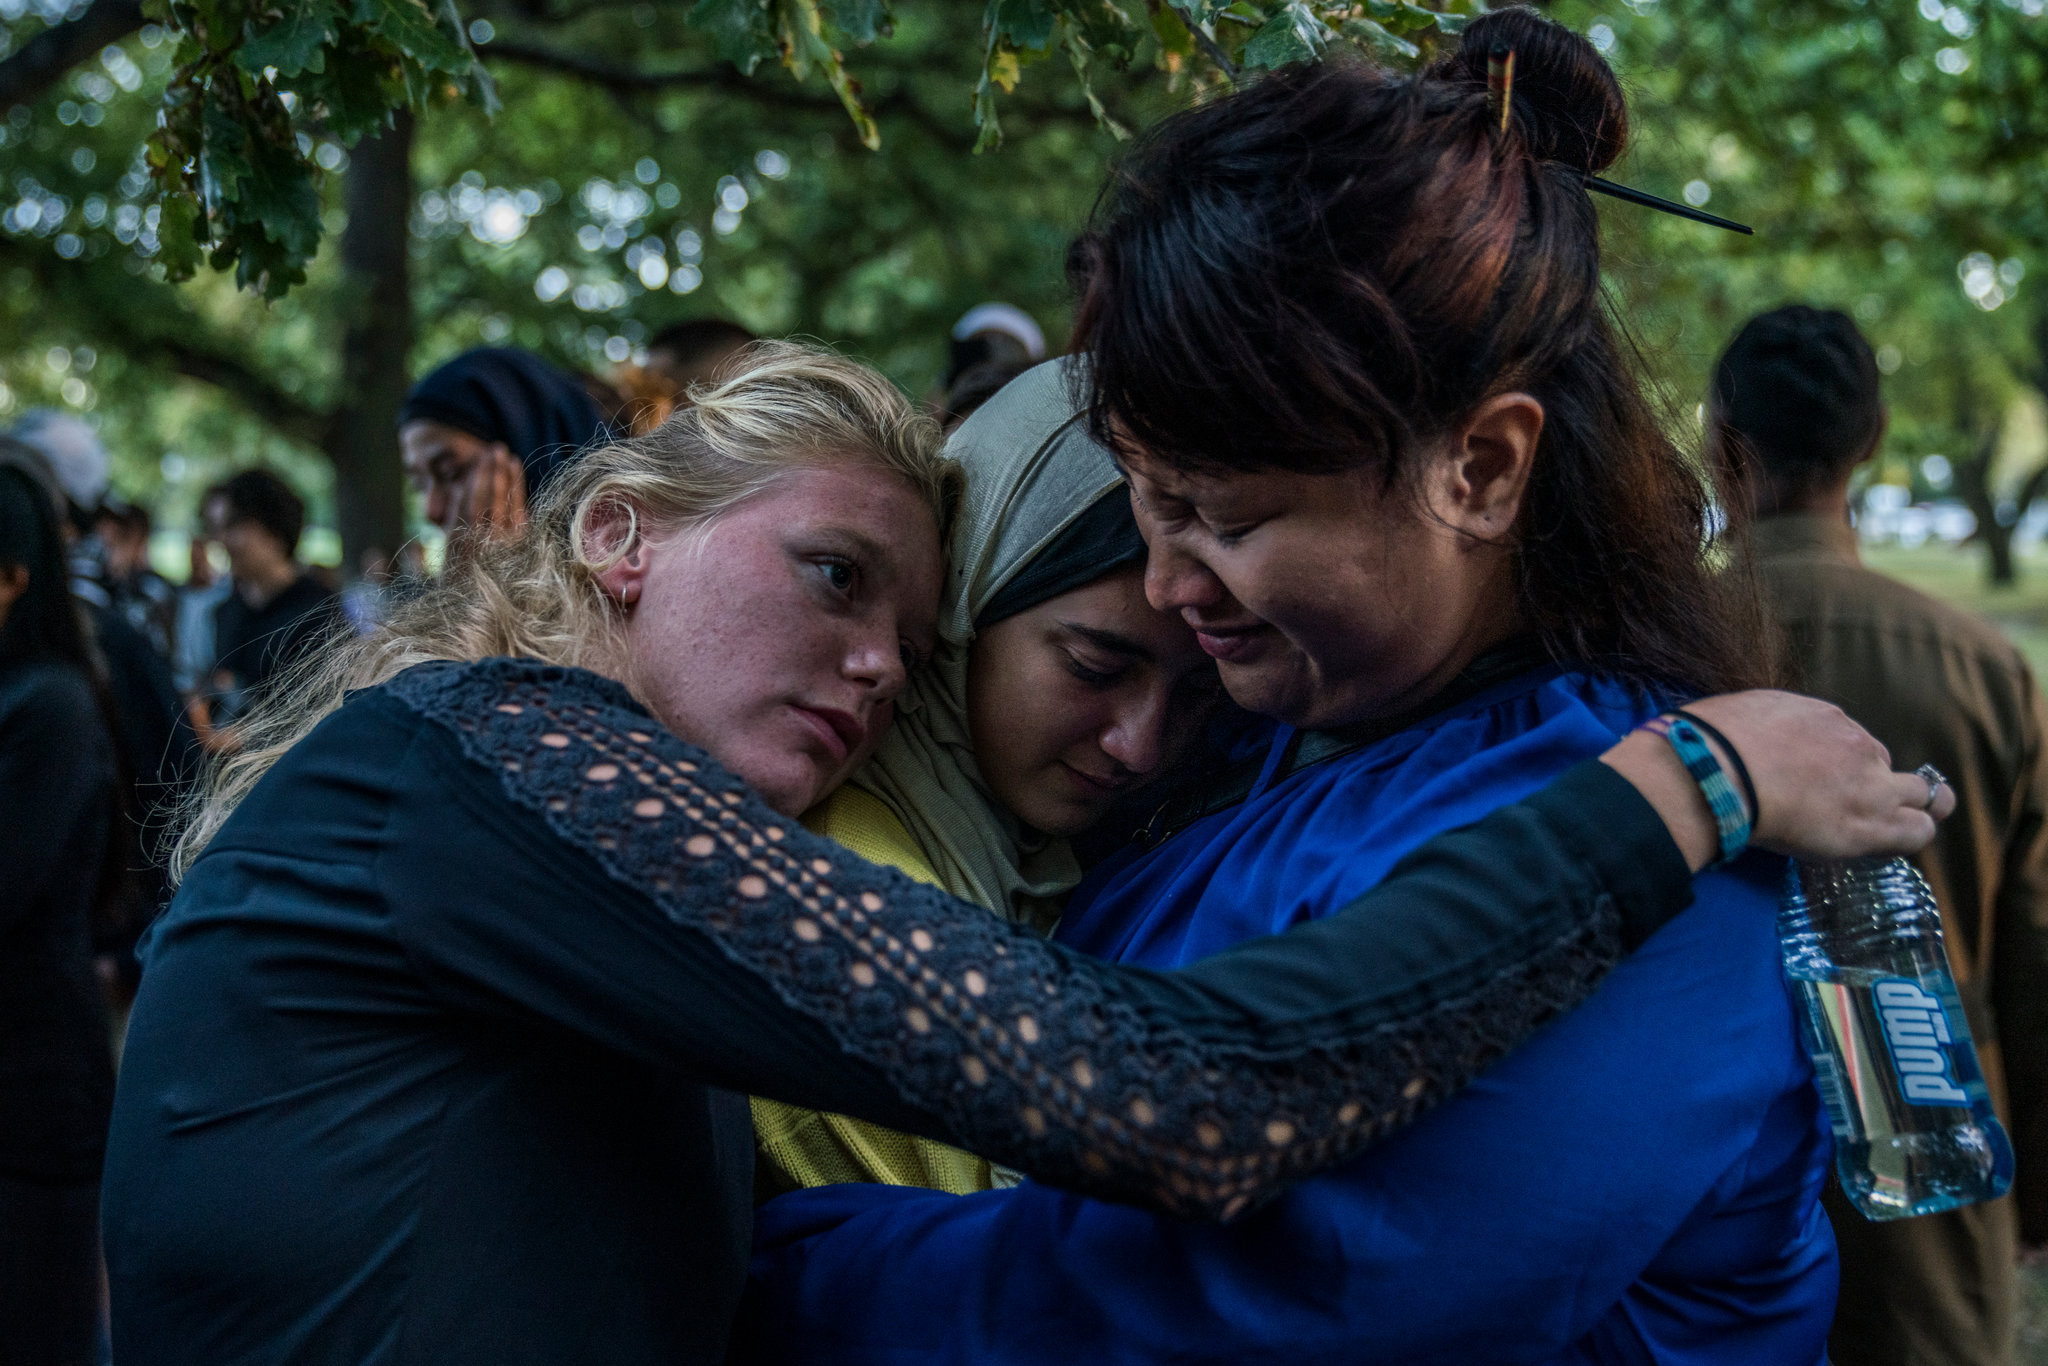 A community-led vigil in tribute to victims near Al Noor Mosque in Christchurch, New Zealand, on Wednesday. CreditAdam Dean for The New York Times